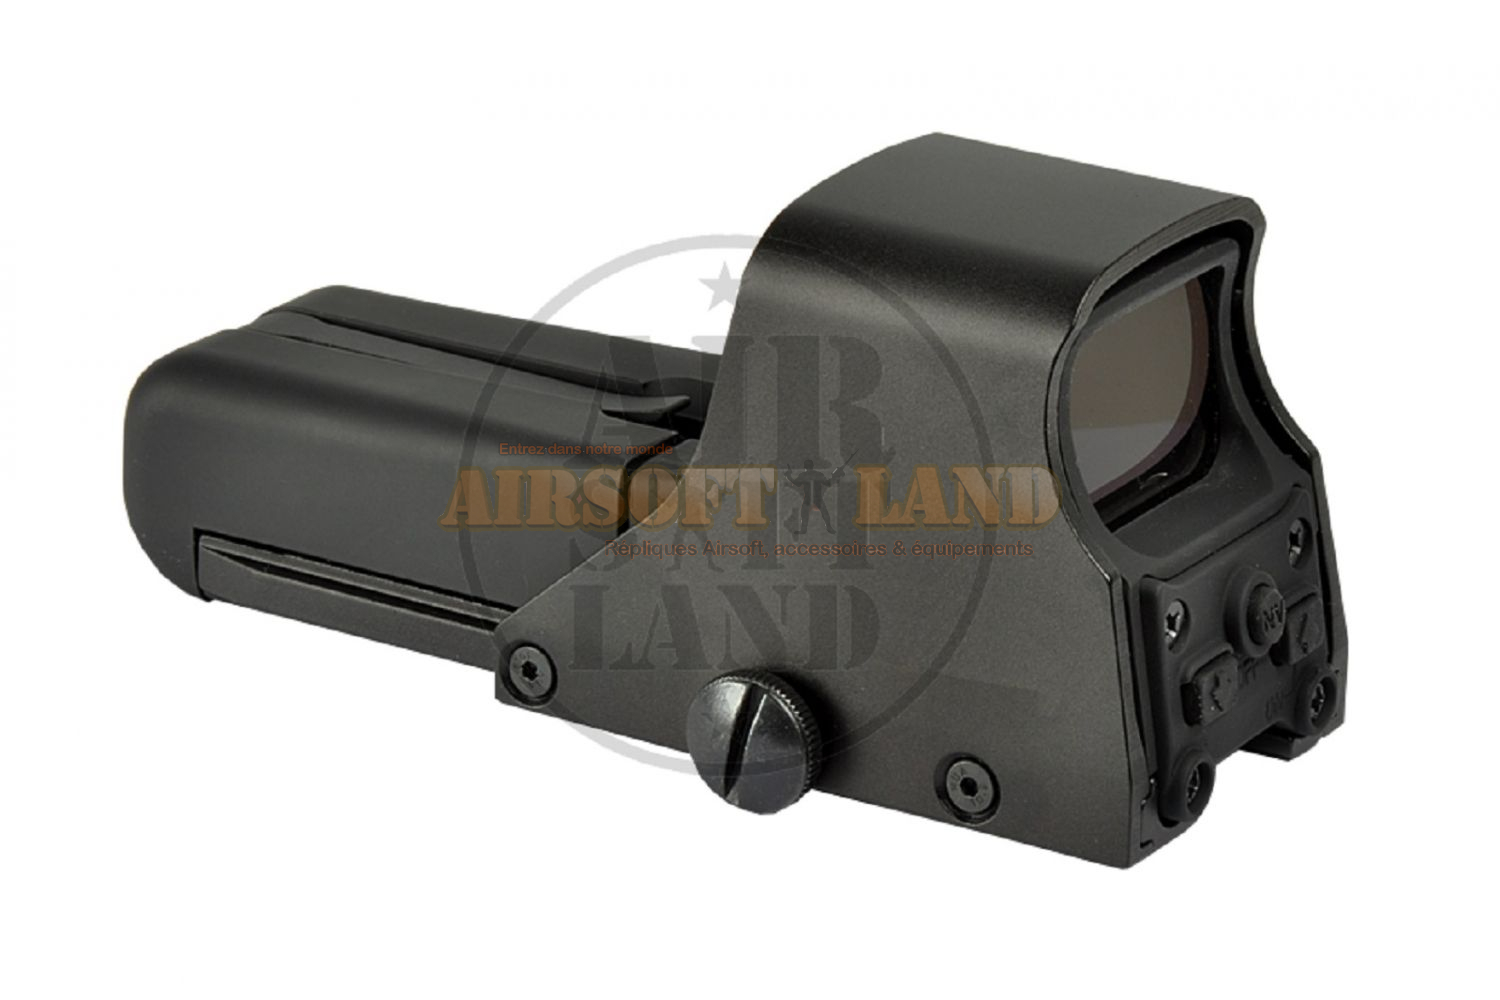 HOLO SIGHT 552 PIRATE ARMS